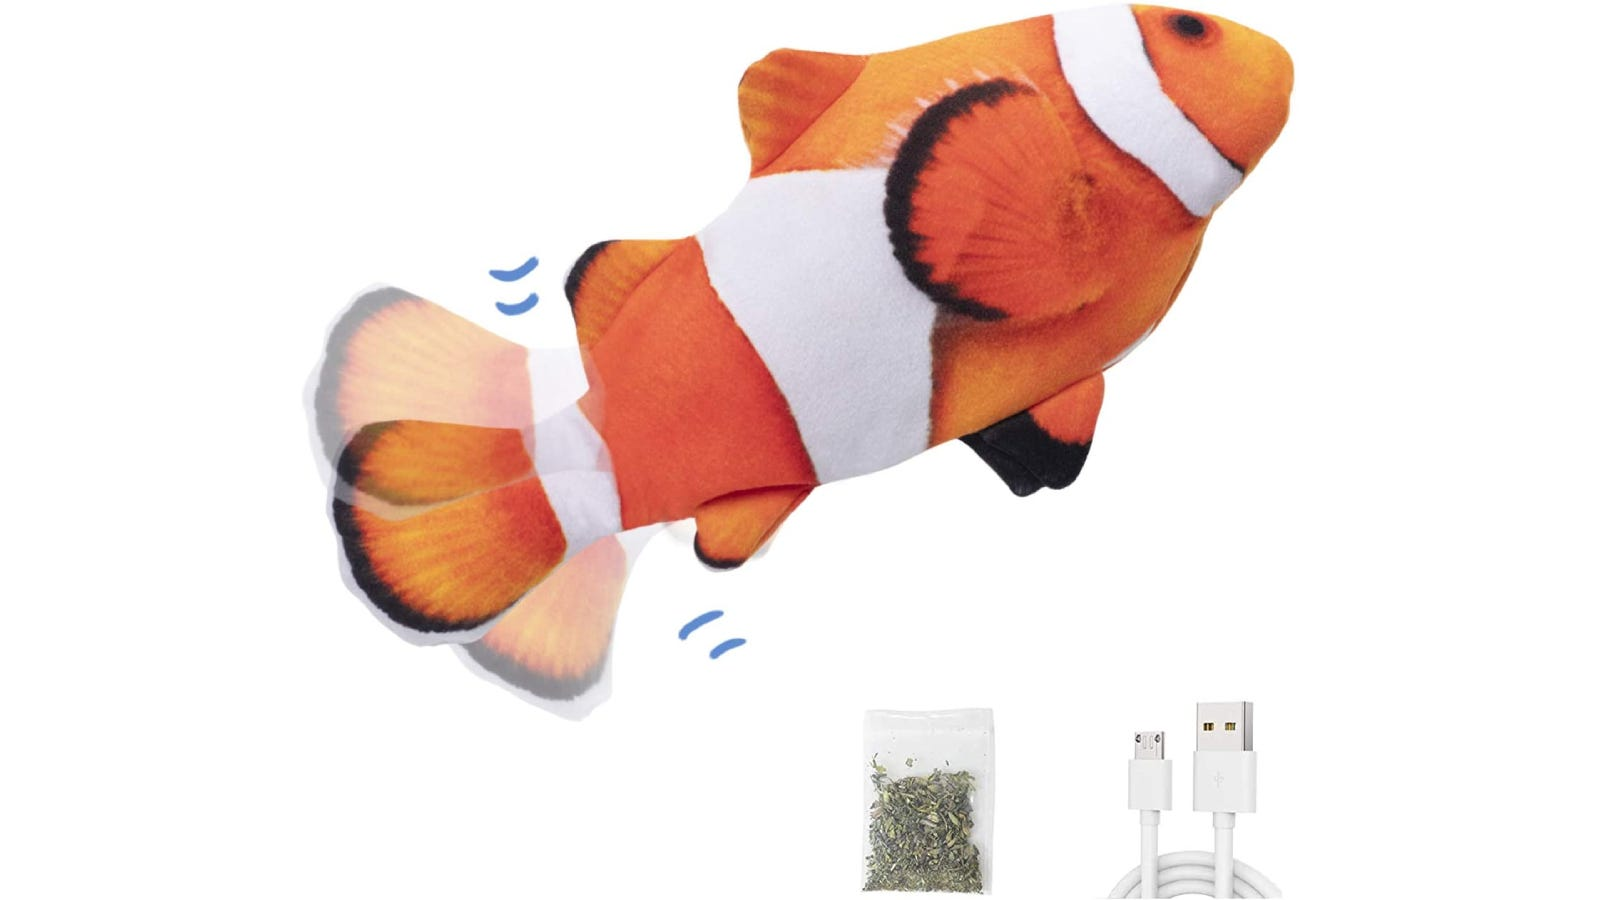 clownfish cat toy with charging cord and bag of catnip